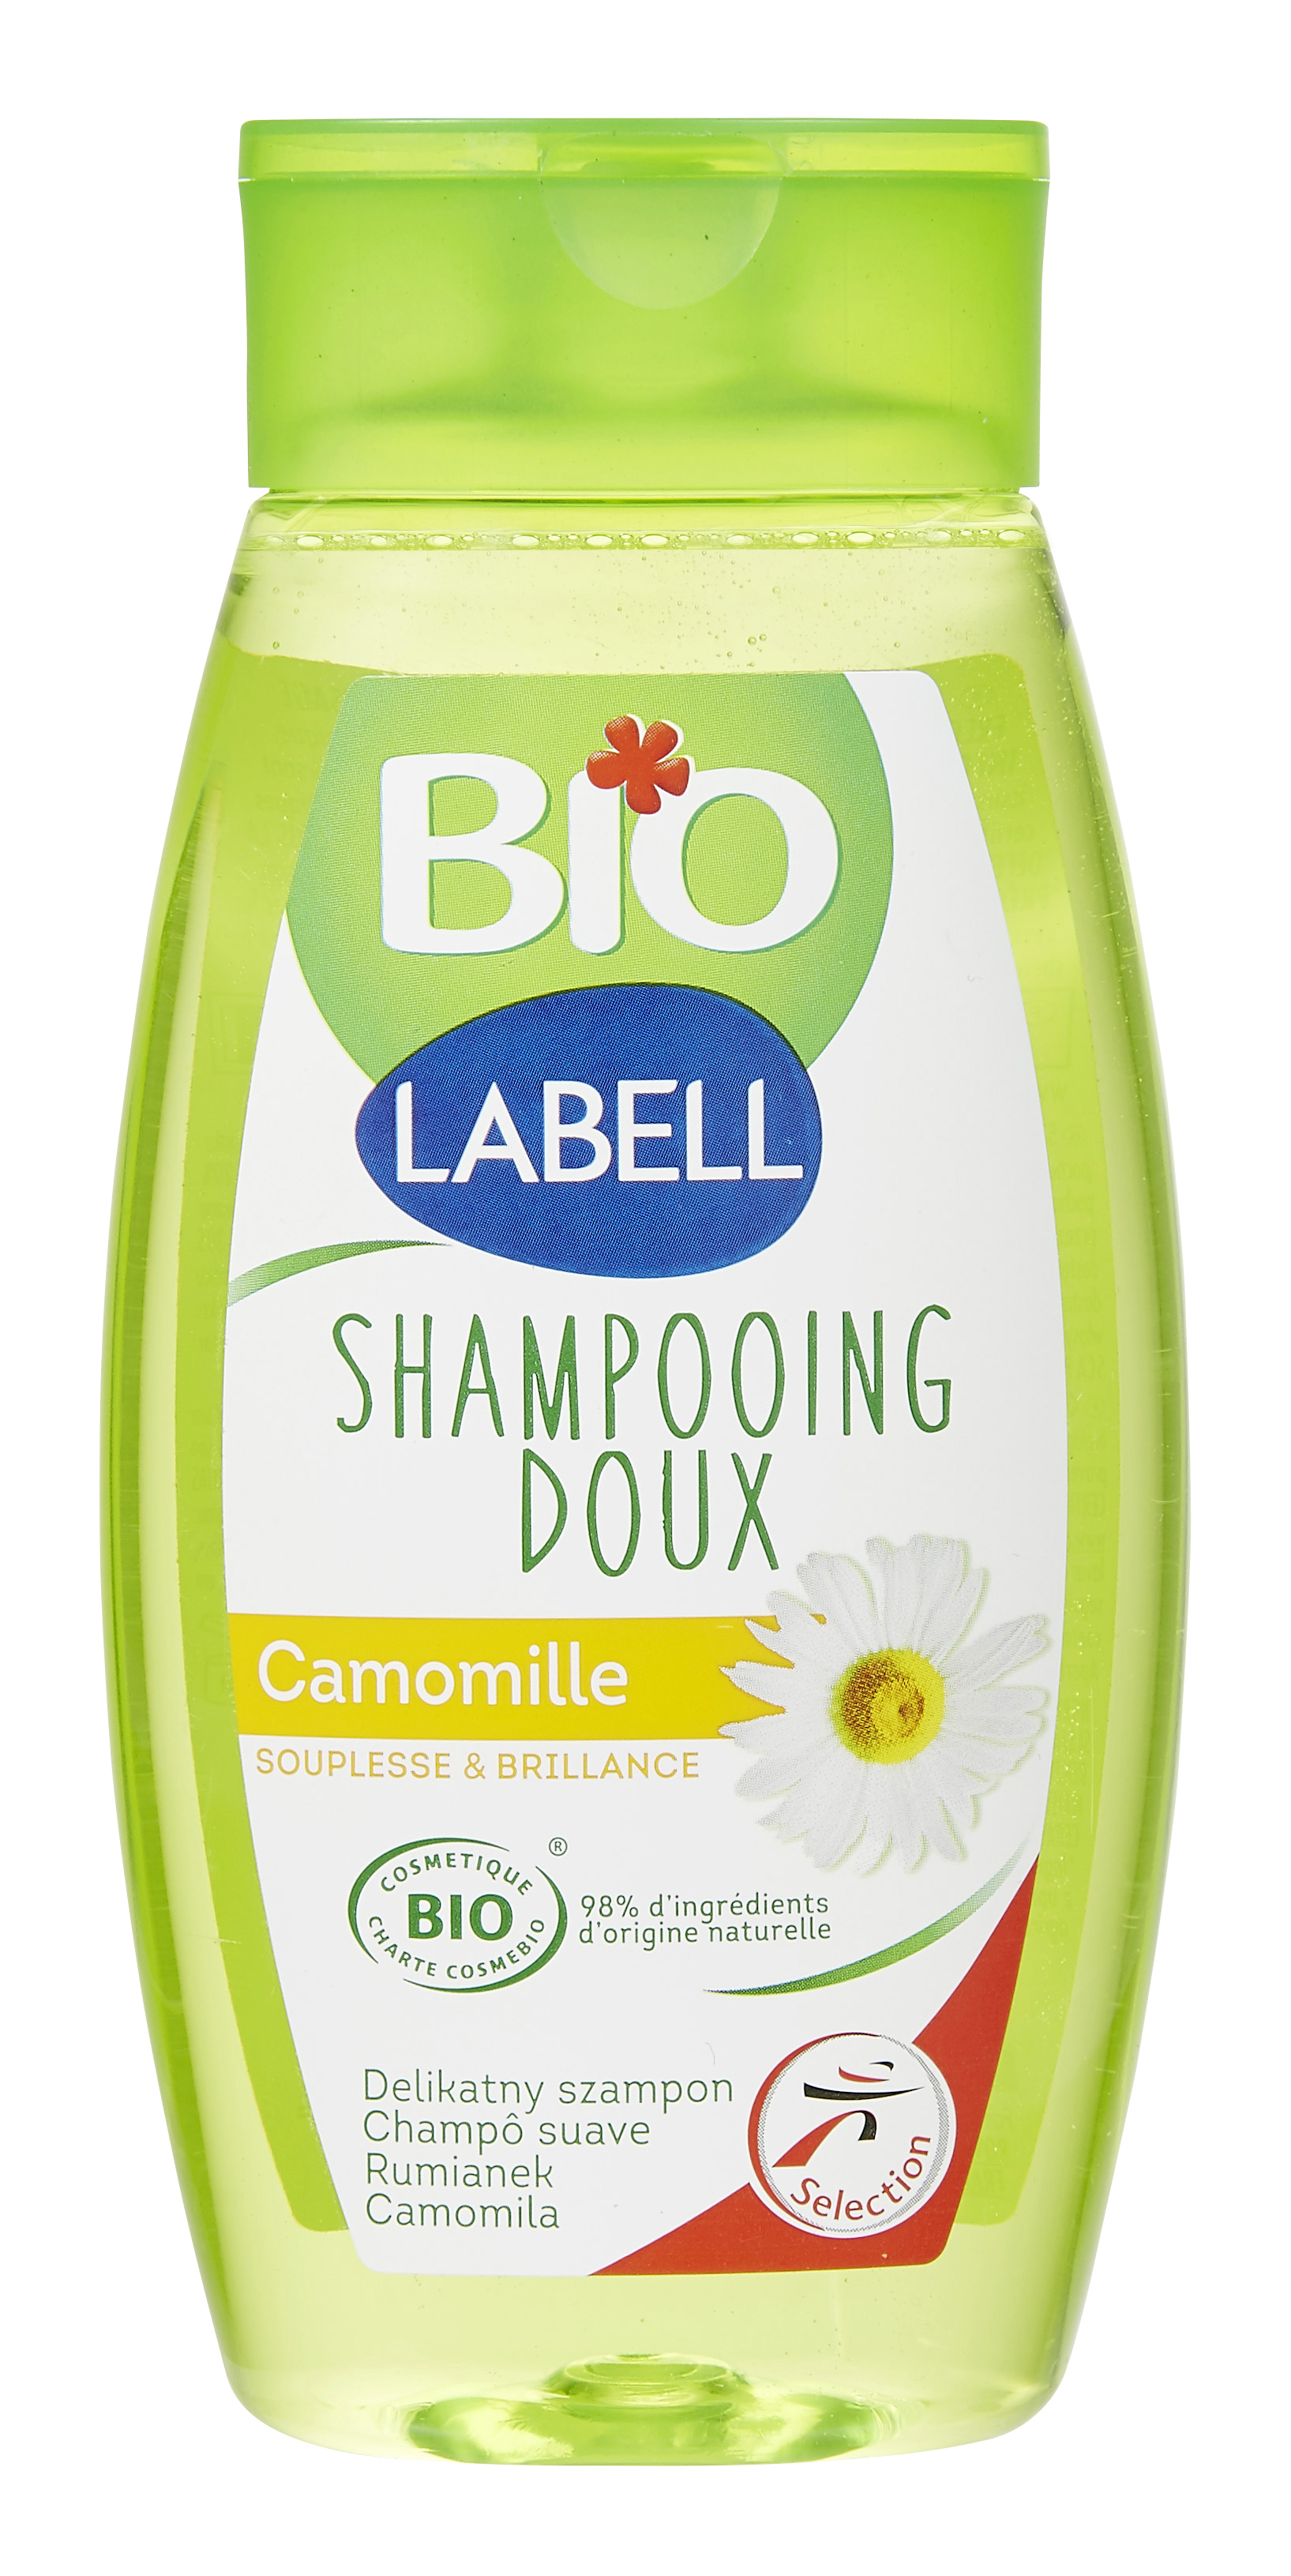 shampooing-doux-bio-labell-1